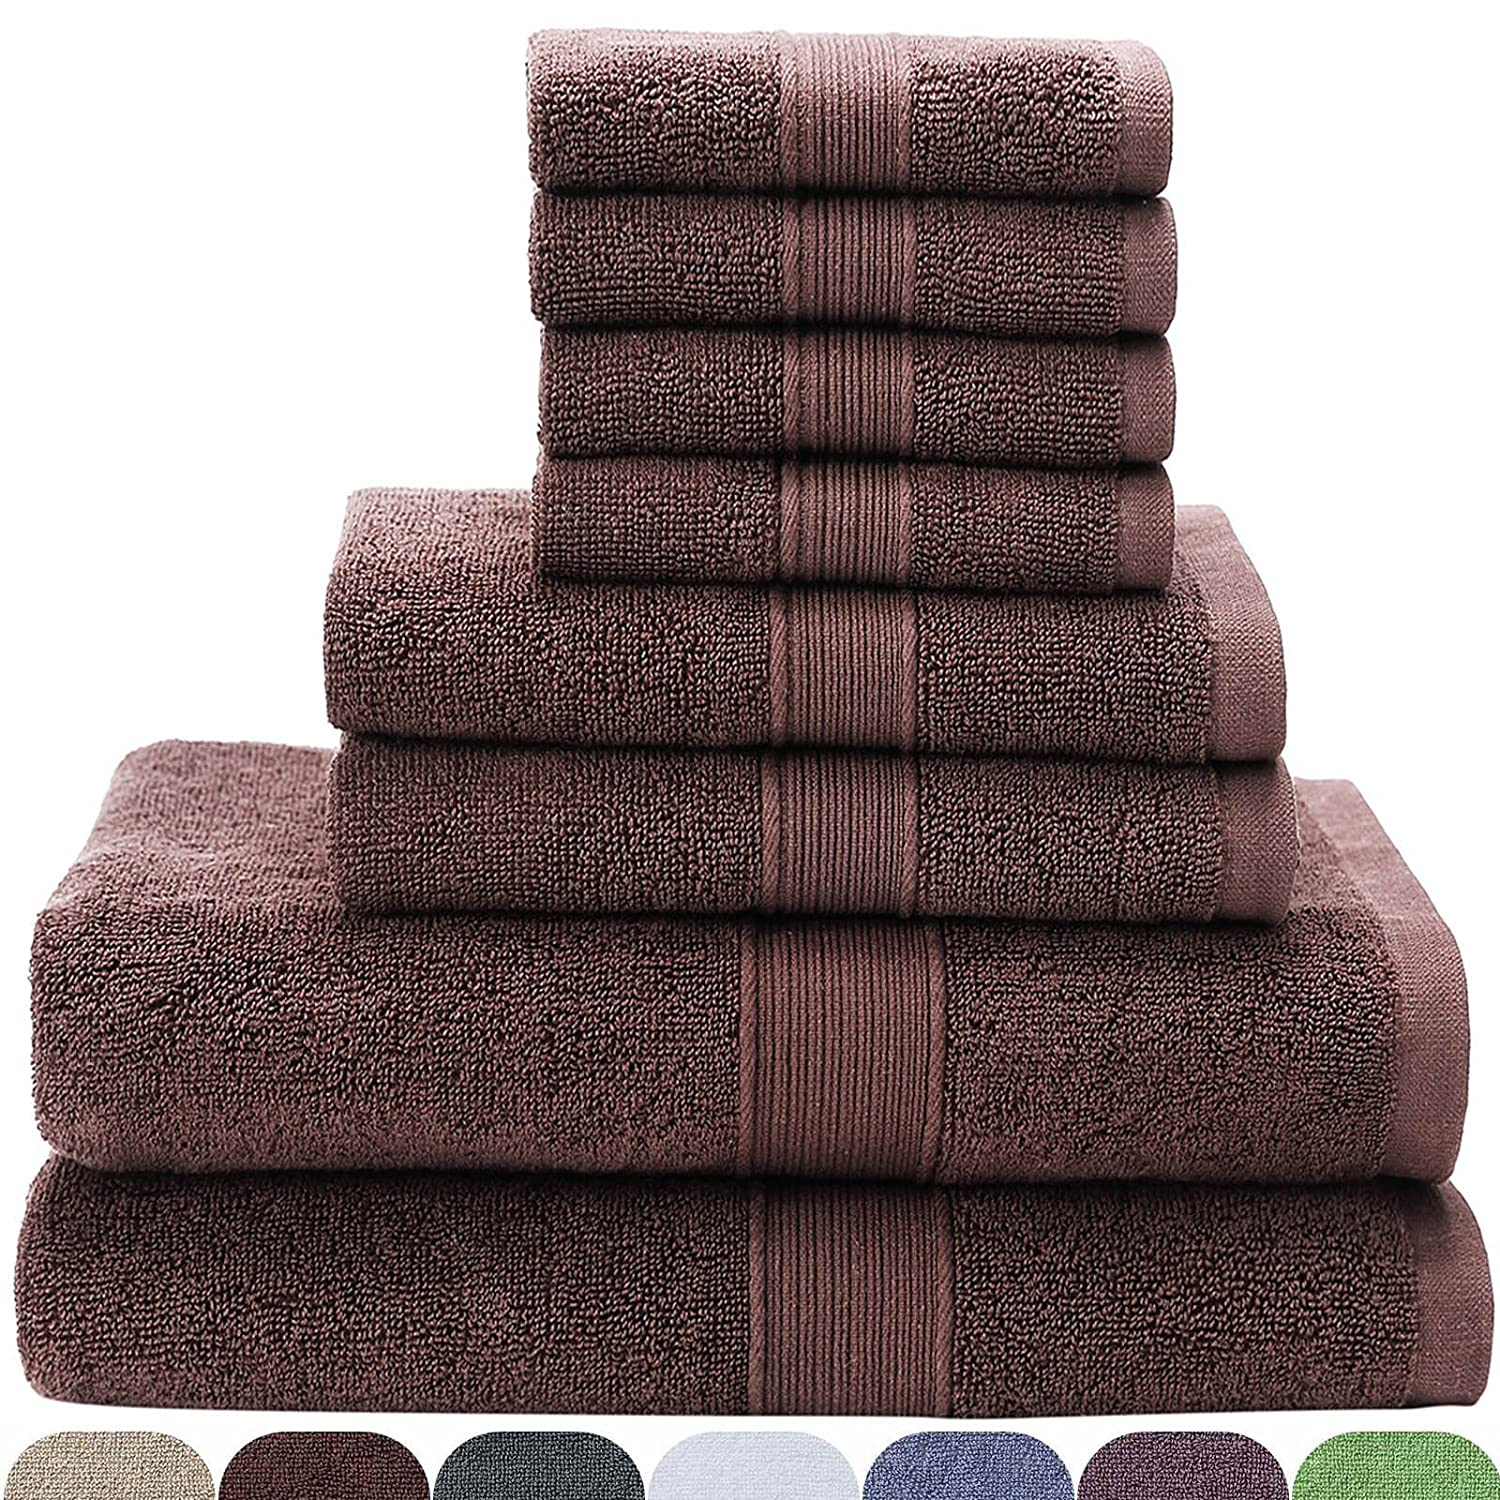 VEEYOO 8 Piece Towel Set White: 2 Bath Towels, 2 Hand Towels, 4 Washcloths, 100% Cotton Hotel & Spa Quality, Extra Soft and Highly Absorbent Bathroom Towel Set